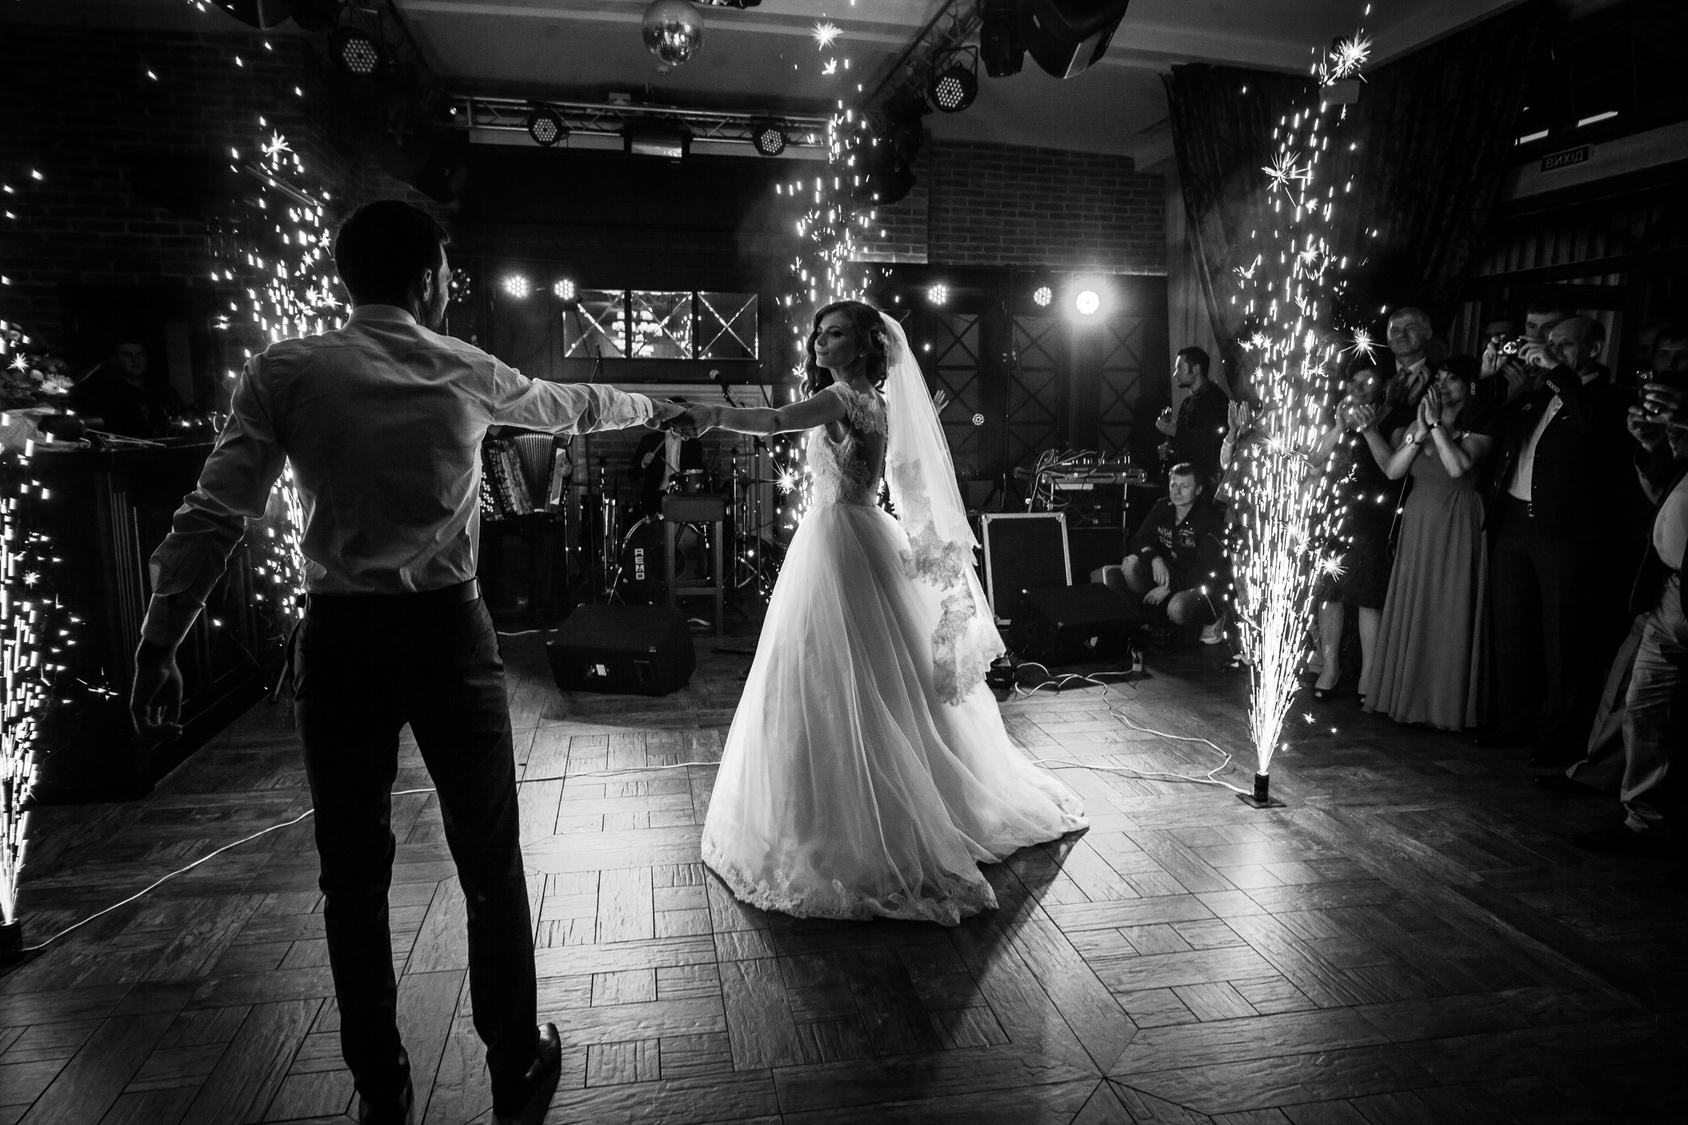 Dr. Tinsley Keefe Advises on Being the Best Dancer at Your Wedding